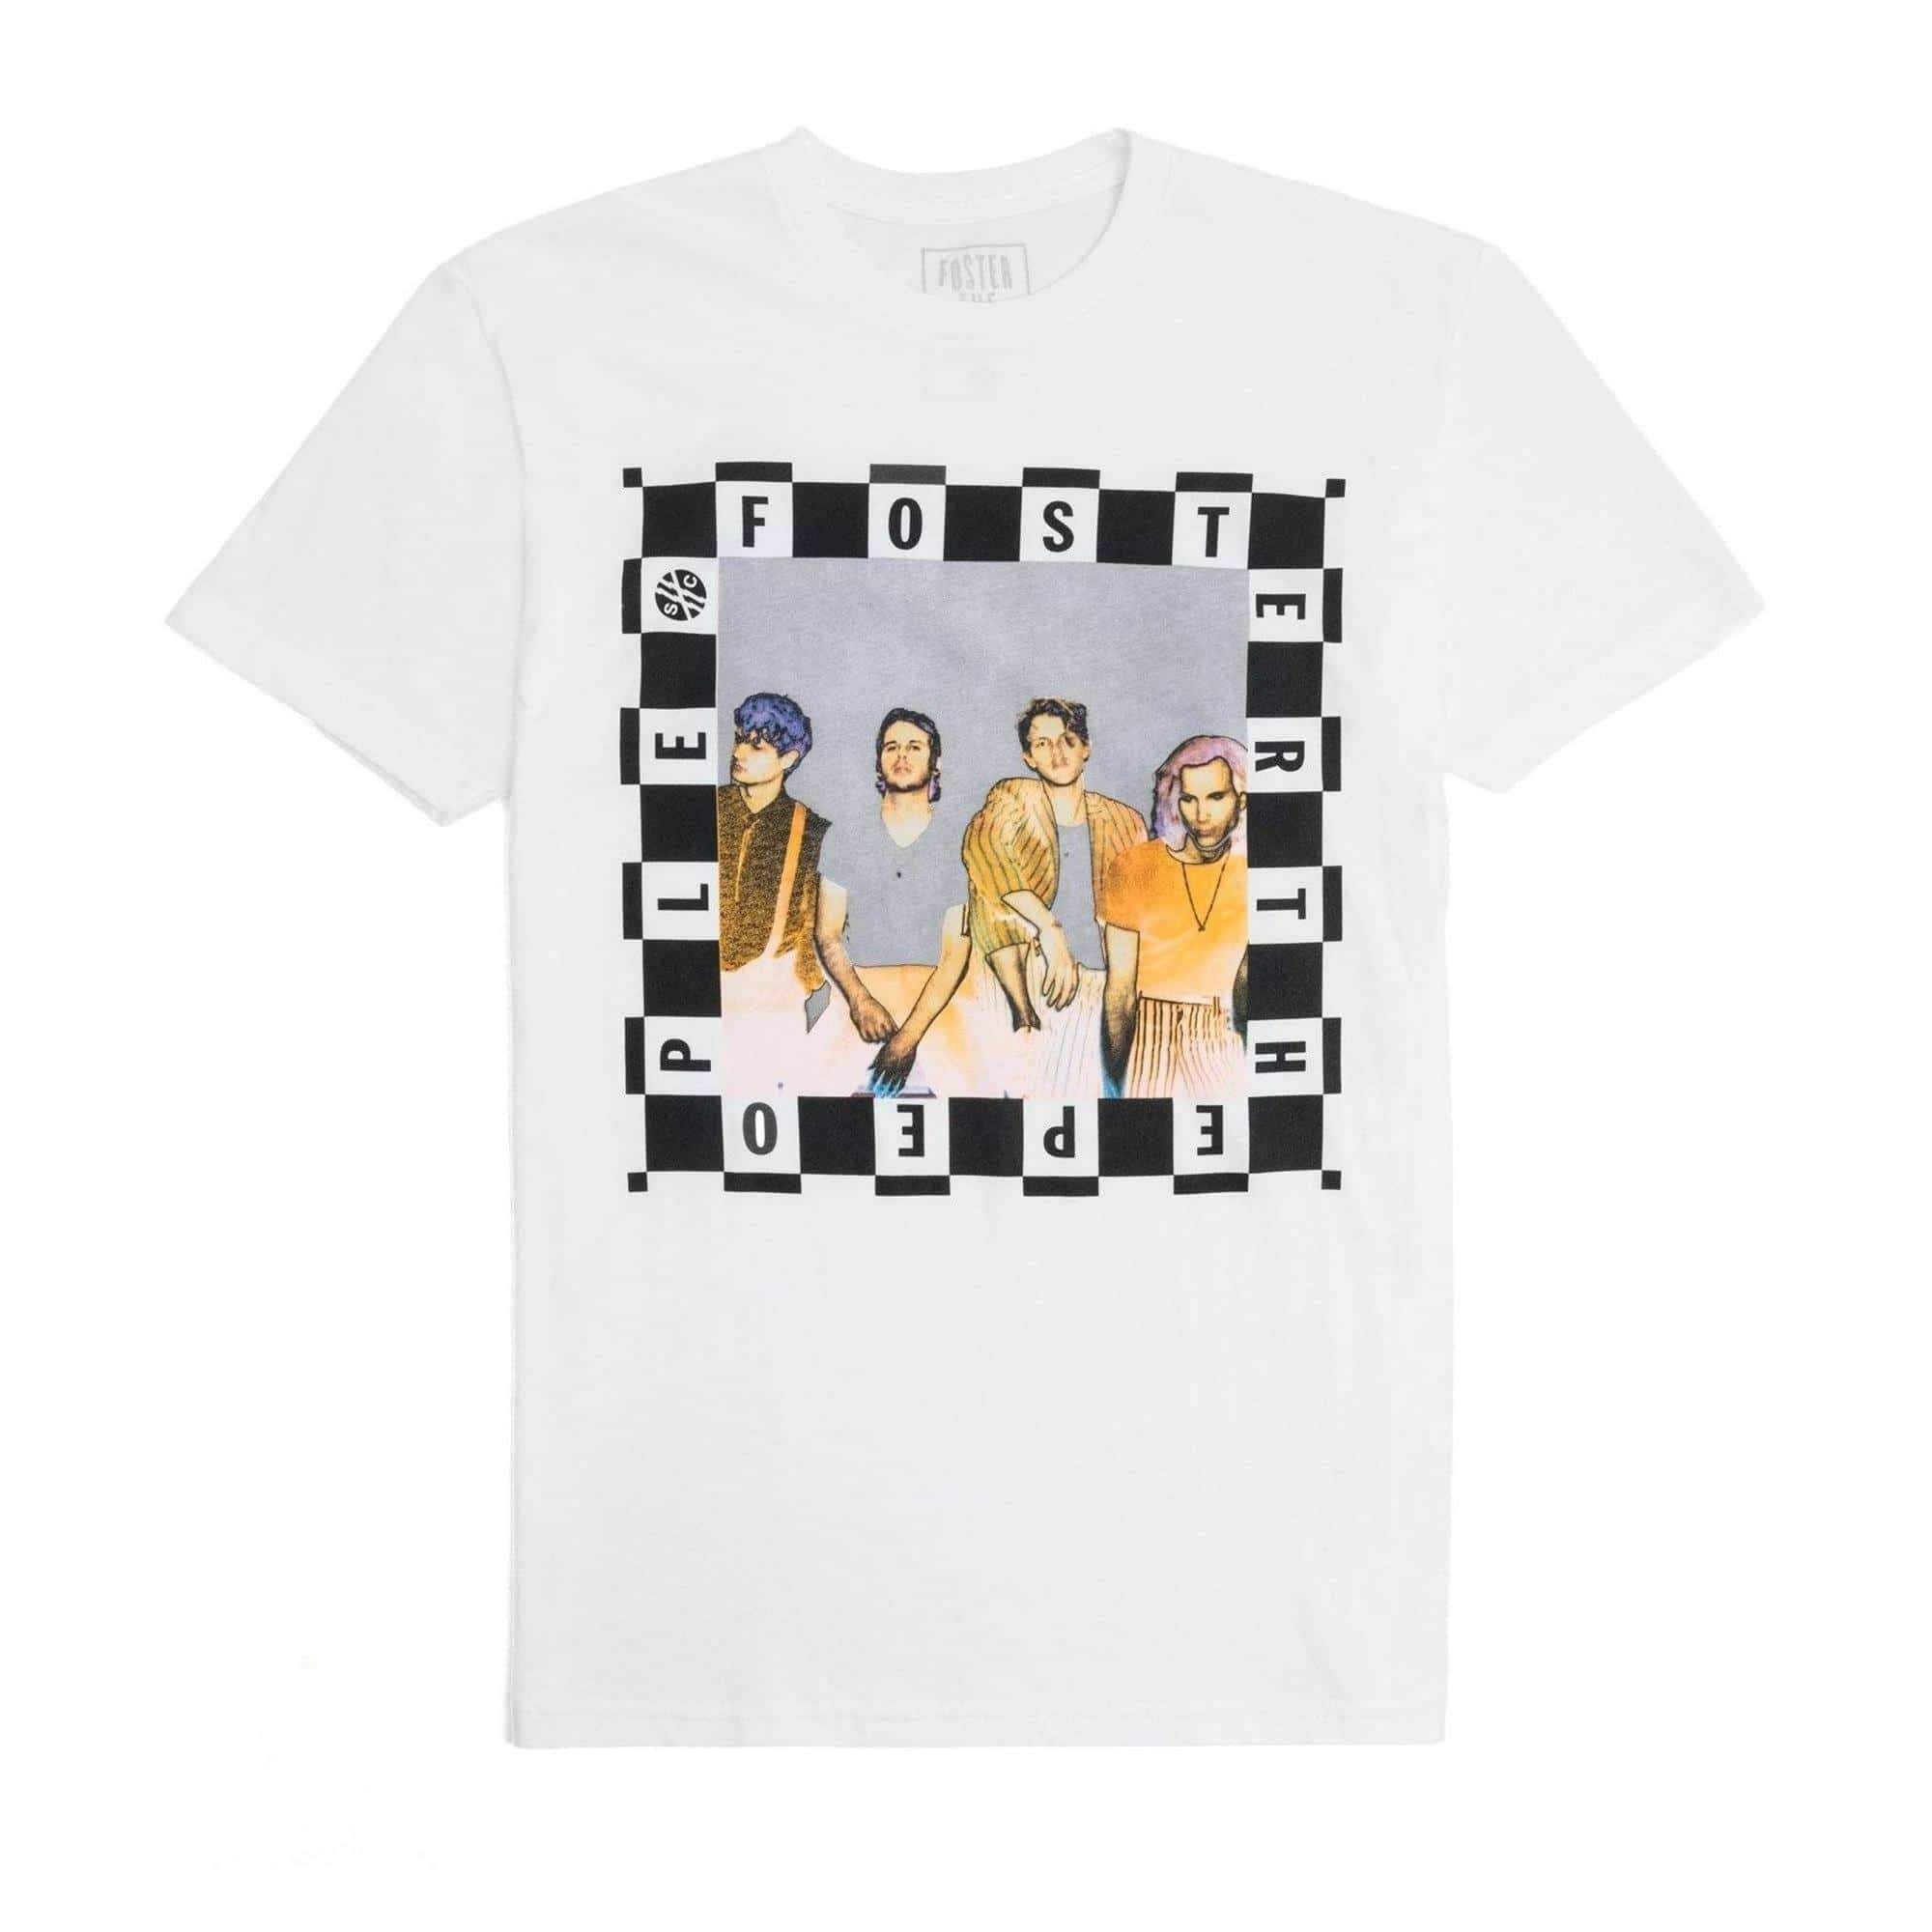 c042508db2 Foster the People  Checkered Portrait  Tee